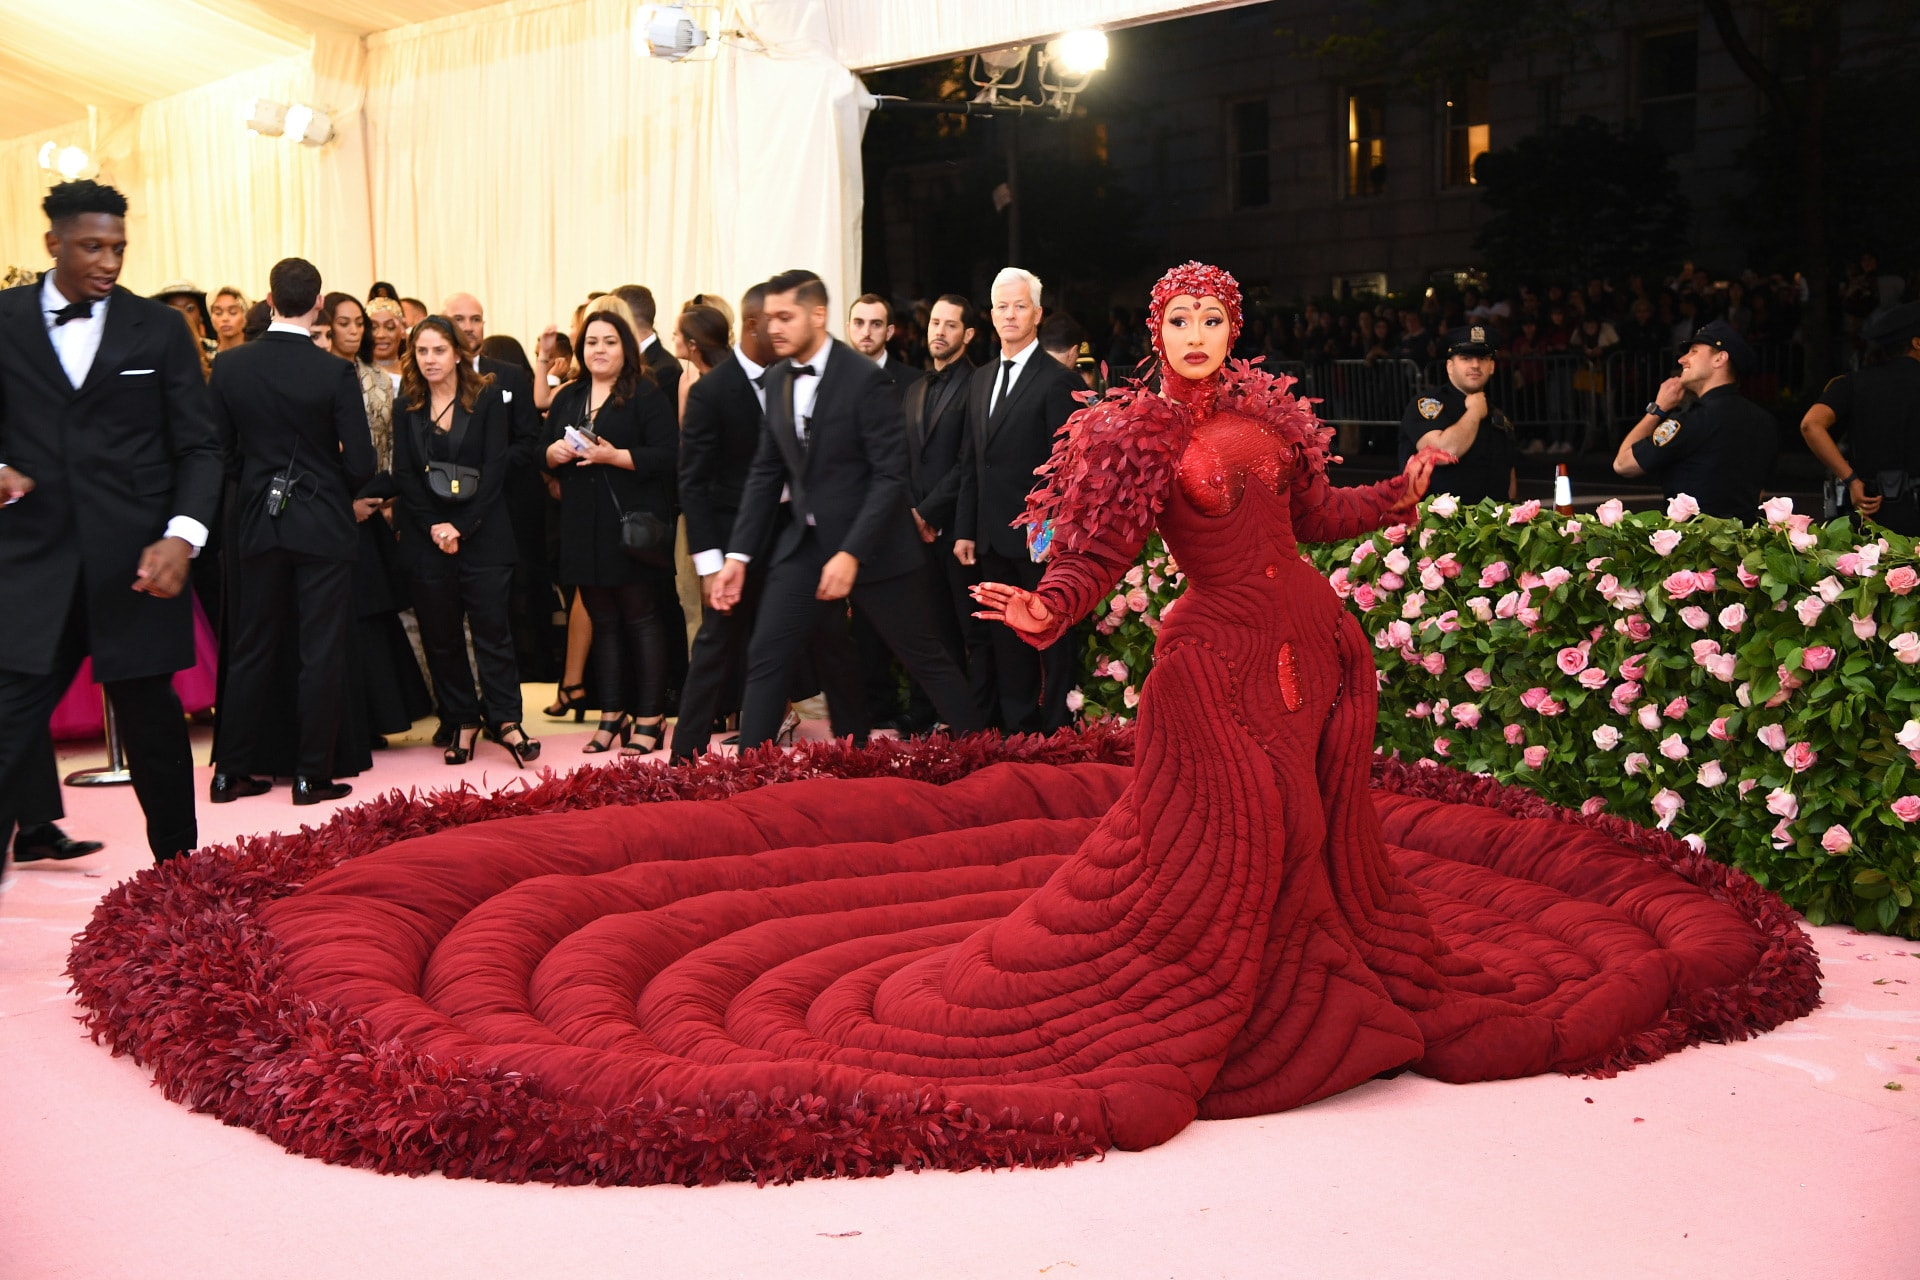 Cardi B's Met Gala 2019 dress featured 30,000 feathers and took 35 people 2,000 hours to make